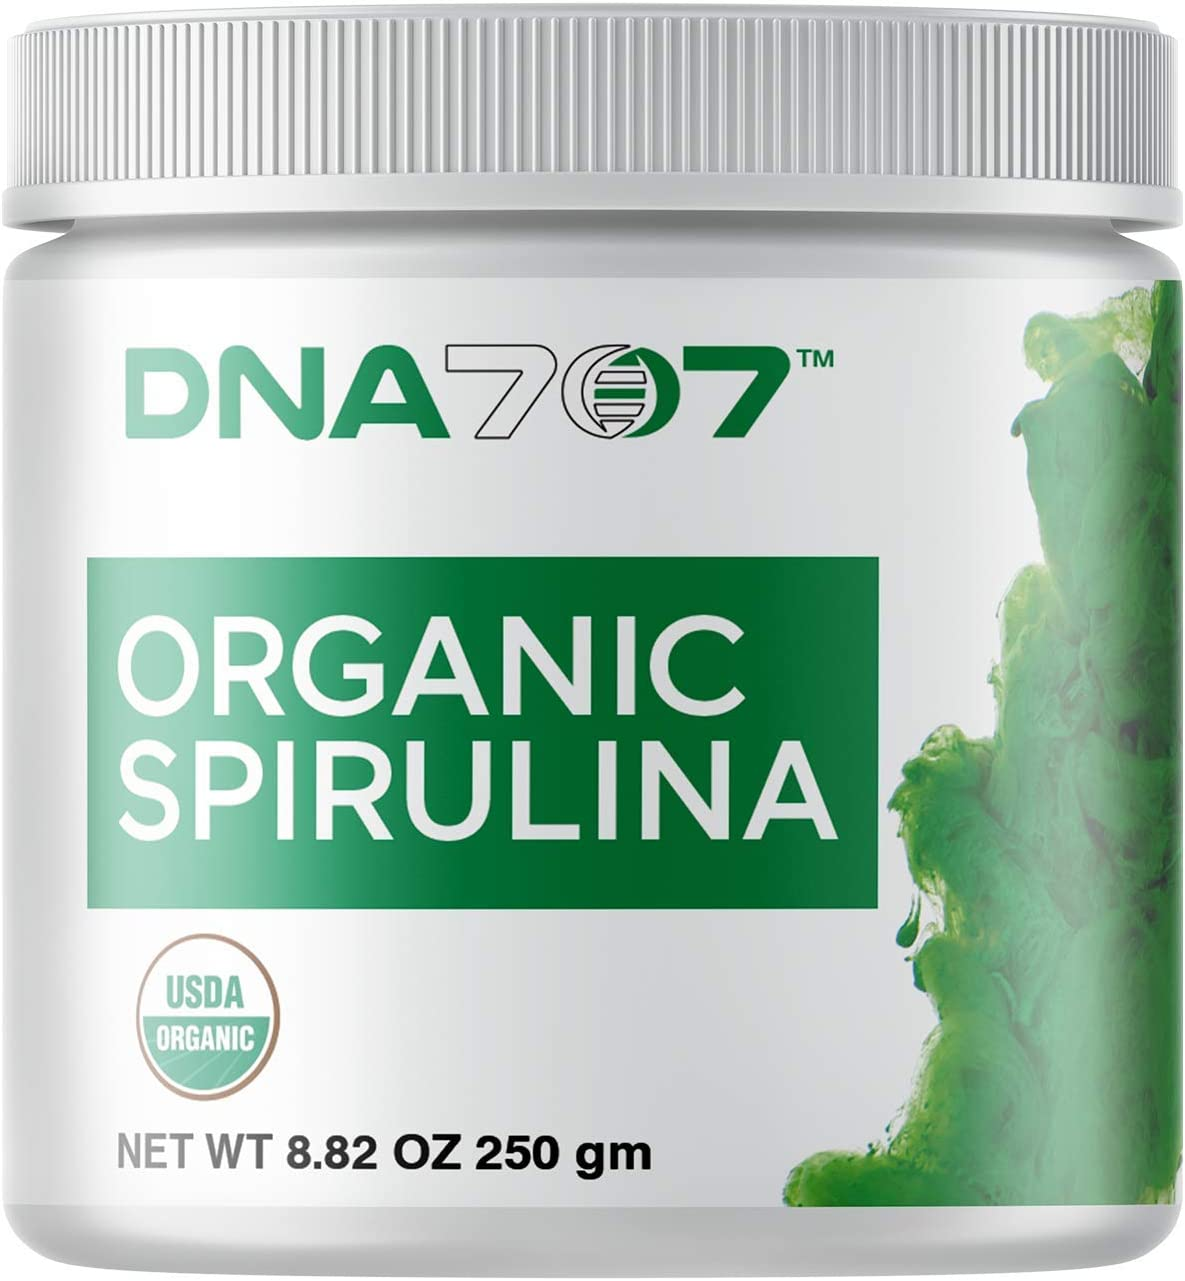 DNA707 Organic Spirulina Powder – 83 Servings 8.82 oz 250g Organically Grown and Sustainably Harvested Non-GMO Blue Green Algae, Raw, 100 Vegetarian Vegan, Non-Irradiated 250 g Spirulina